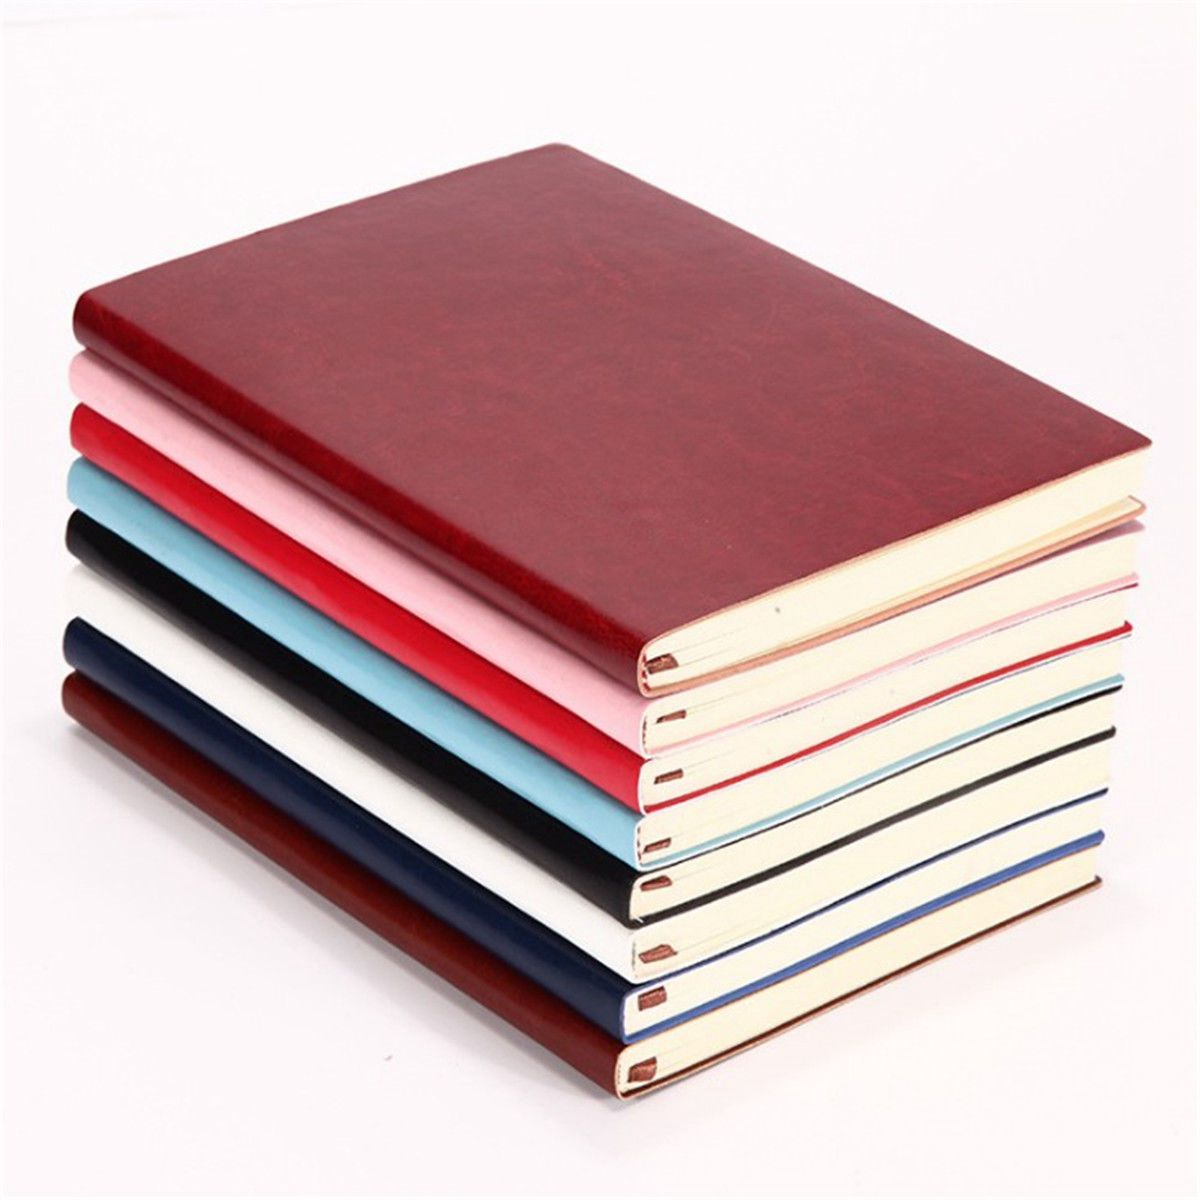 6 Color Random Soft Cover PU Leather Notebook Writing Journal 100 Page Lined Diary Book page 2 page 8 glitter powder catalogue regular color